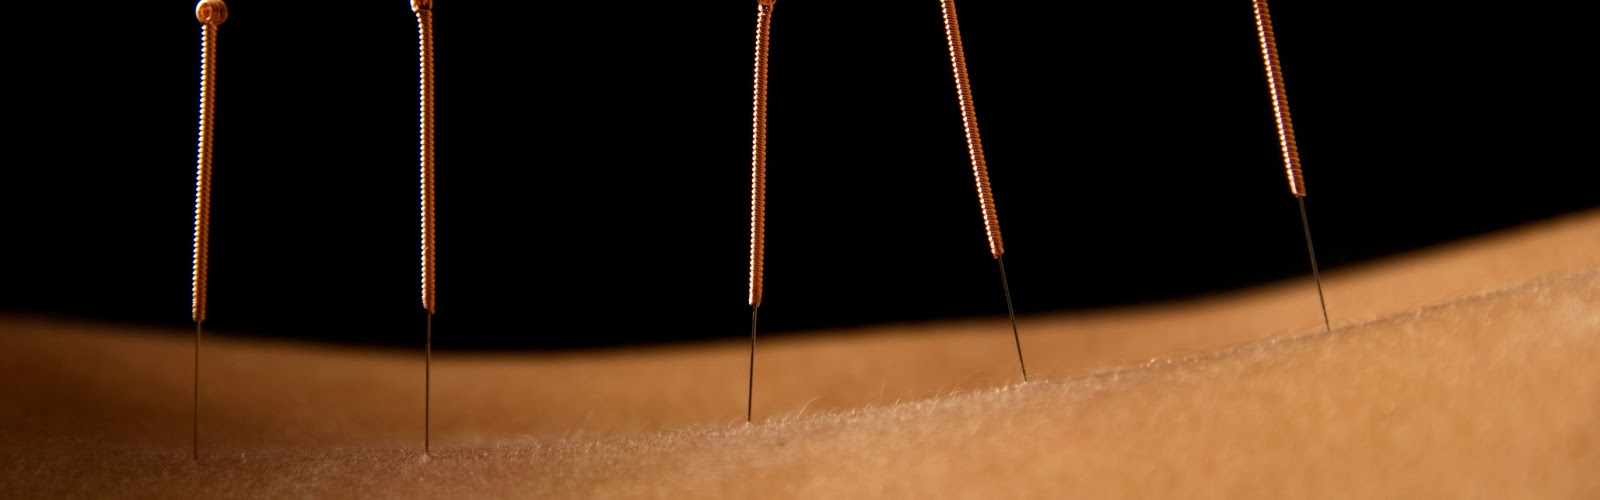 four needles stuck in the back of a patient